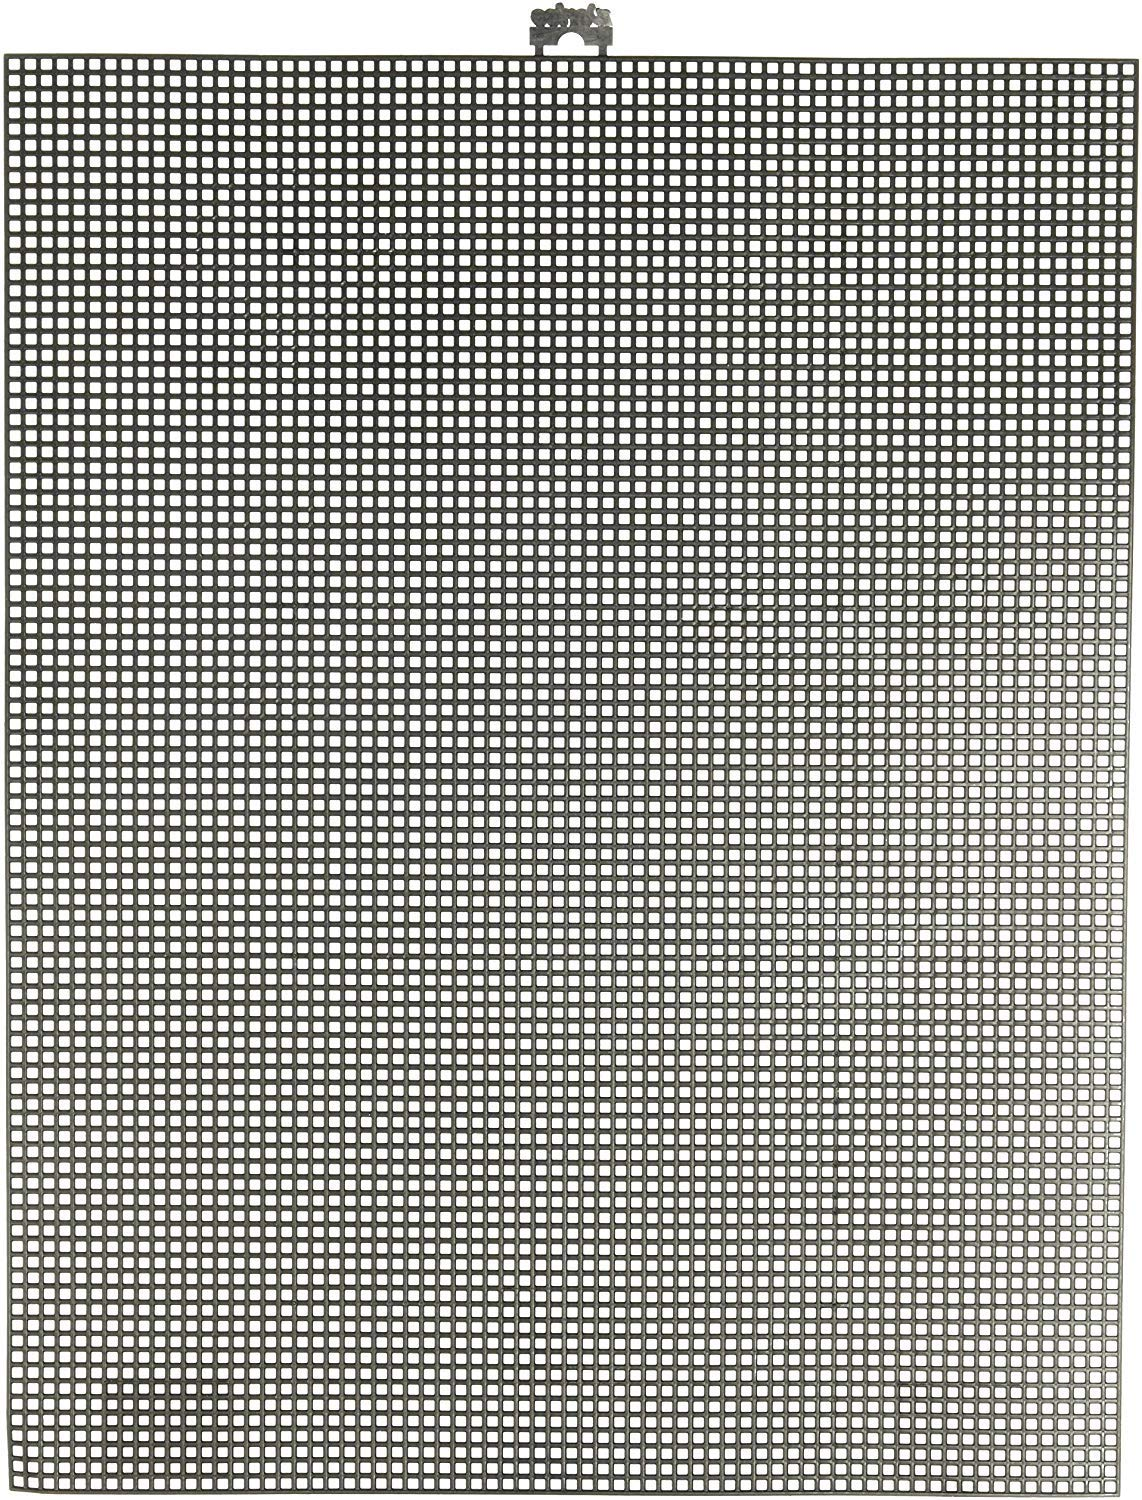 """Darice 7 Mesh Black Plastic Canvas – Create a Variety of Fun Plastic Canvas Crafts Including Bookmarks, Picture Frames, Pins and More – 1 Sheet, 7 Holes Per Inch, 10.5""""x13.5"""" Per Sheet"""